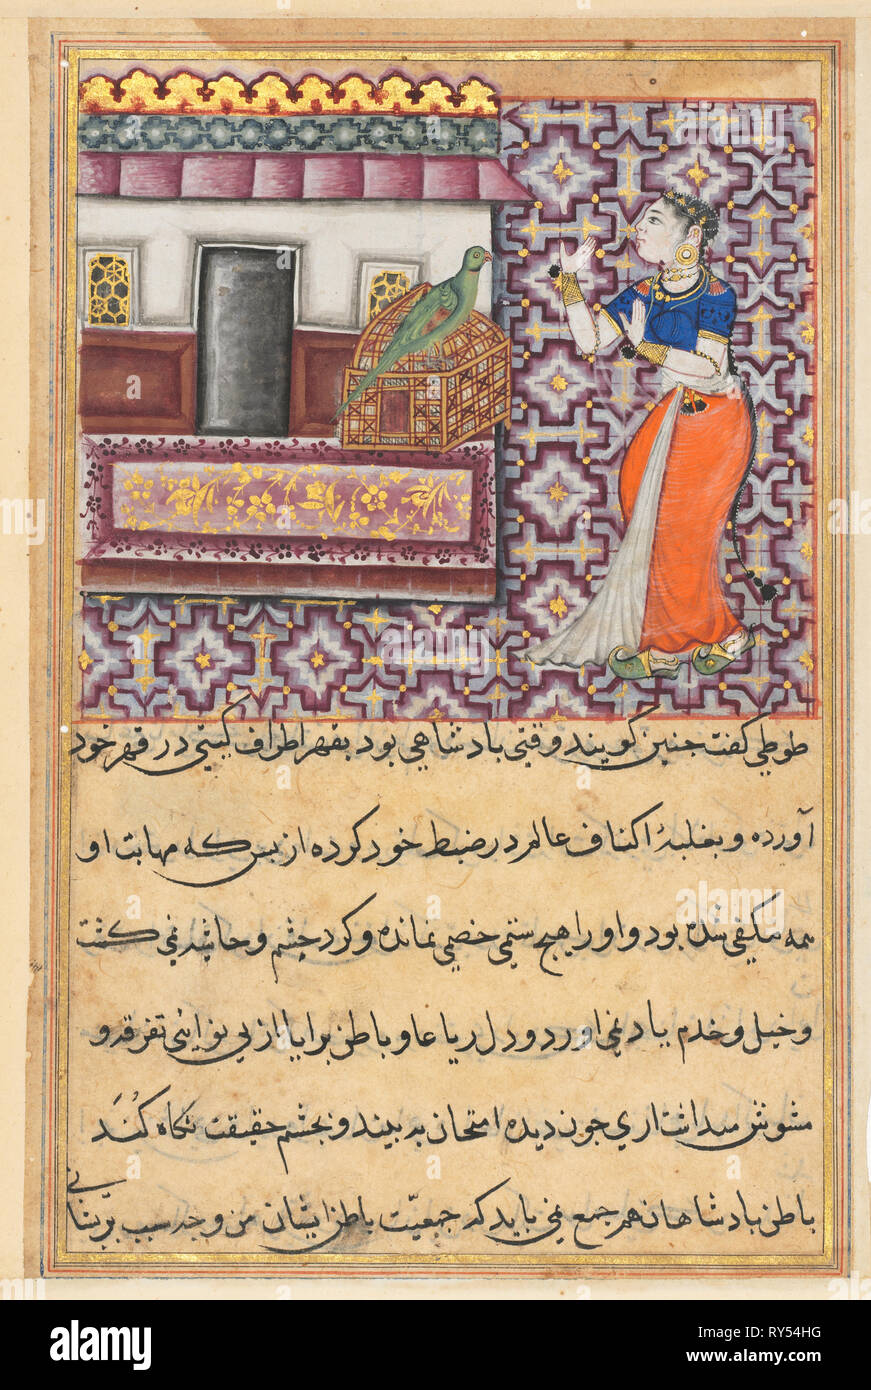 Page from Tales of a Parrot (Tuti-nama): Fiftieth night: The parrot addresses Khujasta at the beginning of the fiftieth night, c. 1560. India, Mughal, Reign of Akbar, 16th century. Opaque watercolor, ink and gold on paper - Stock Image